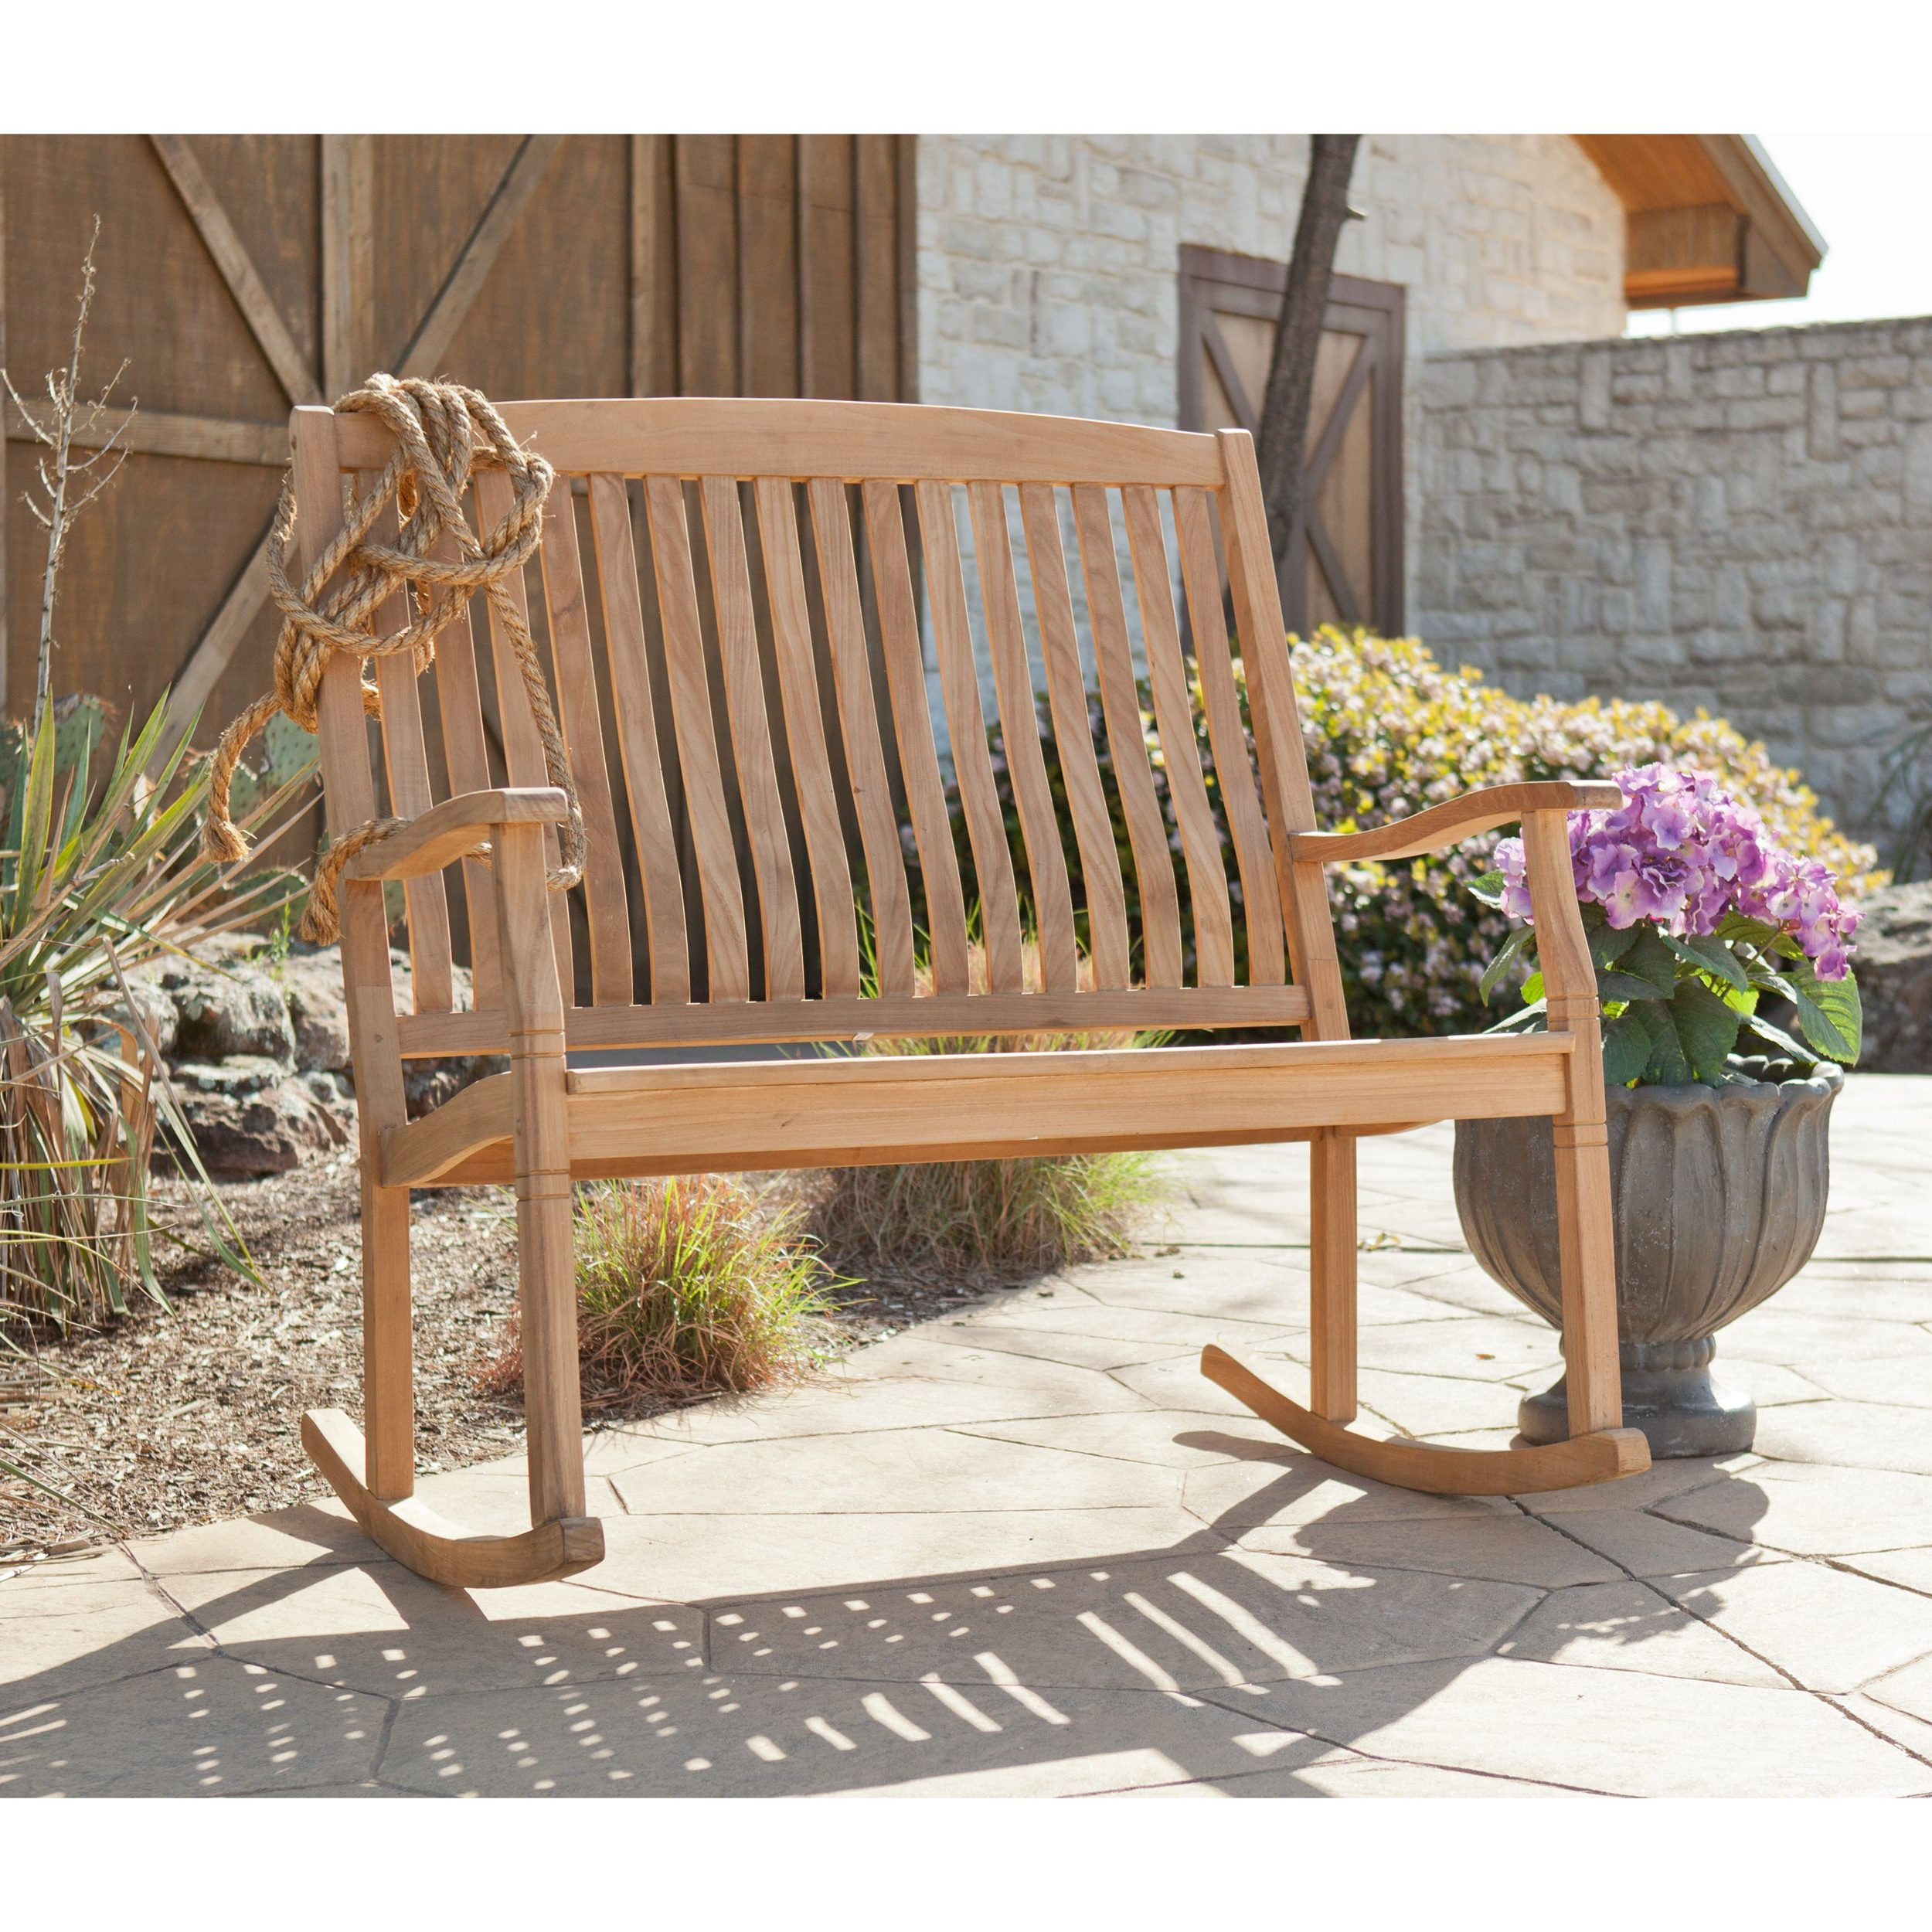 The Graceful Yet Rustic Style Of This Teak Glider Bench Is Intended For Trendy Teak Outdoor Glider Benches (View 2 of 30)